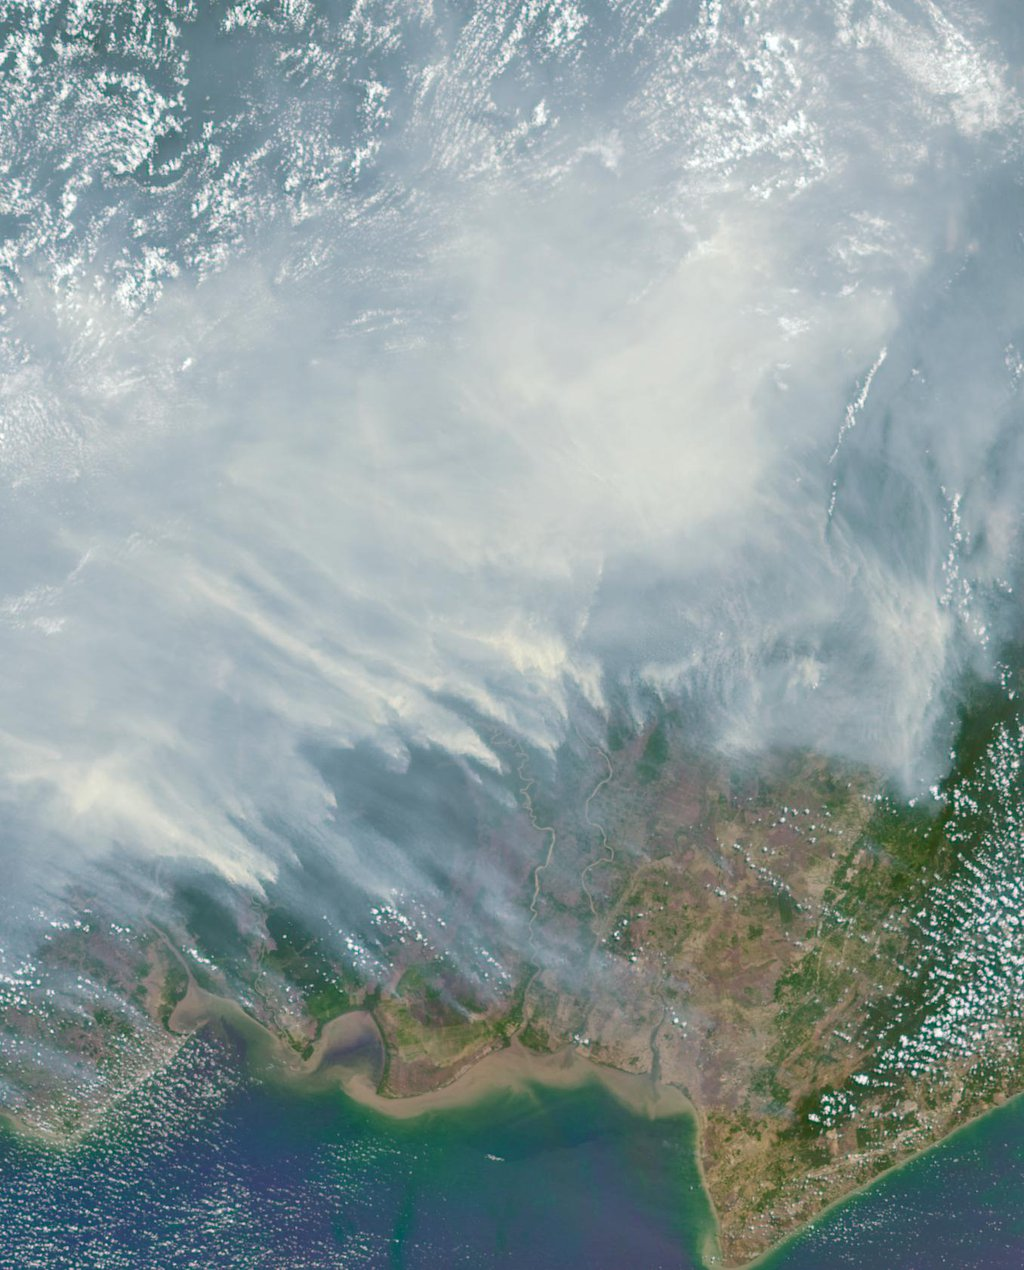 The worst forest fires in nearly two decades are burning out of control on Borneo, creating the thick blanket of smoke in this Oct. 14, 2015 image from NASA's Terra spacecraft.